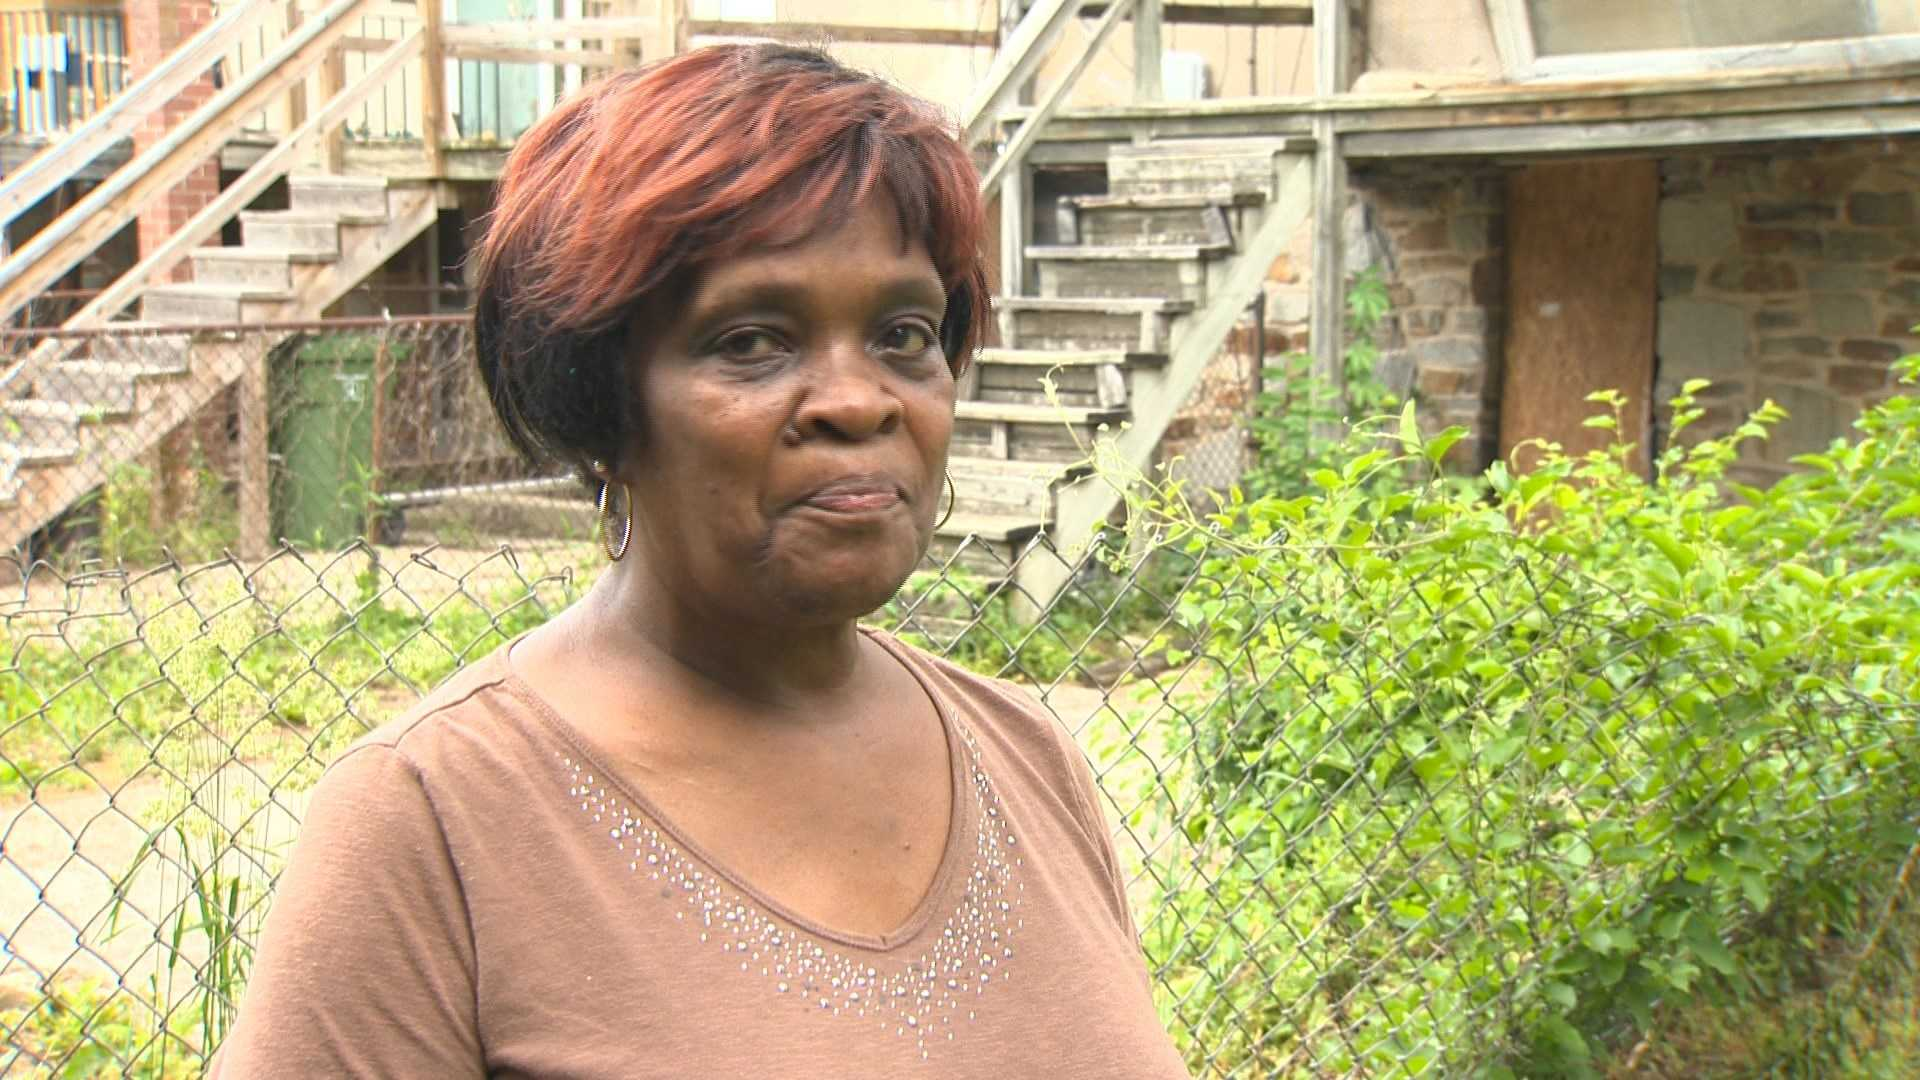 Pat, 71, was a victim of a home invasion and sexual assault in Baltimore. She decided to come forward and speak out against the violence.